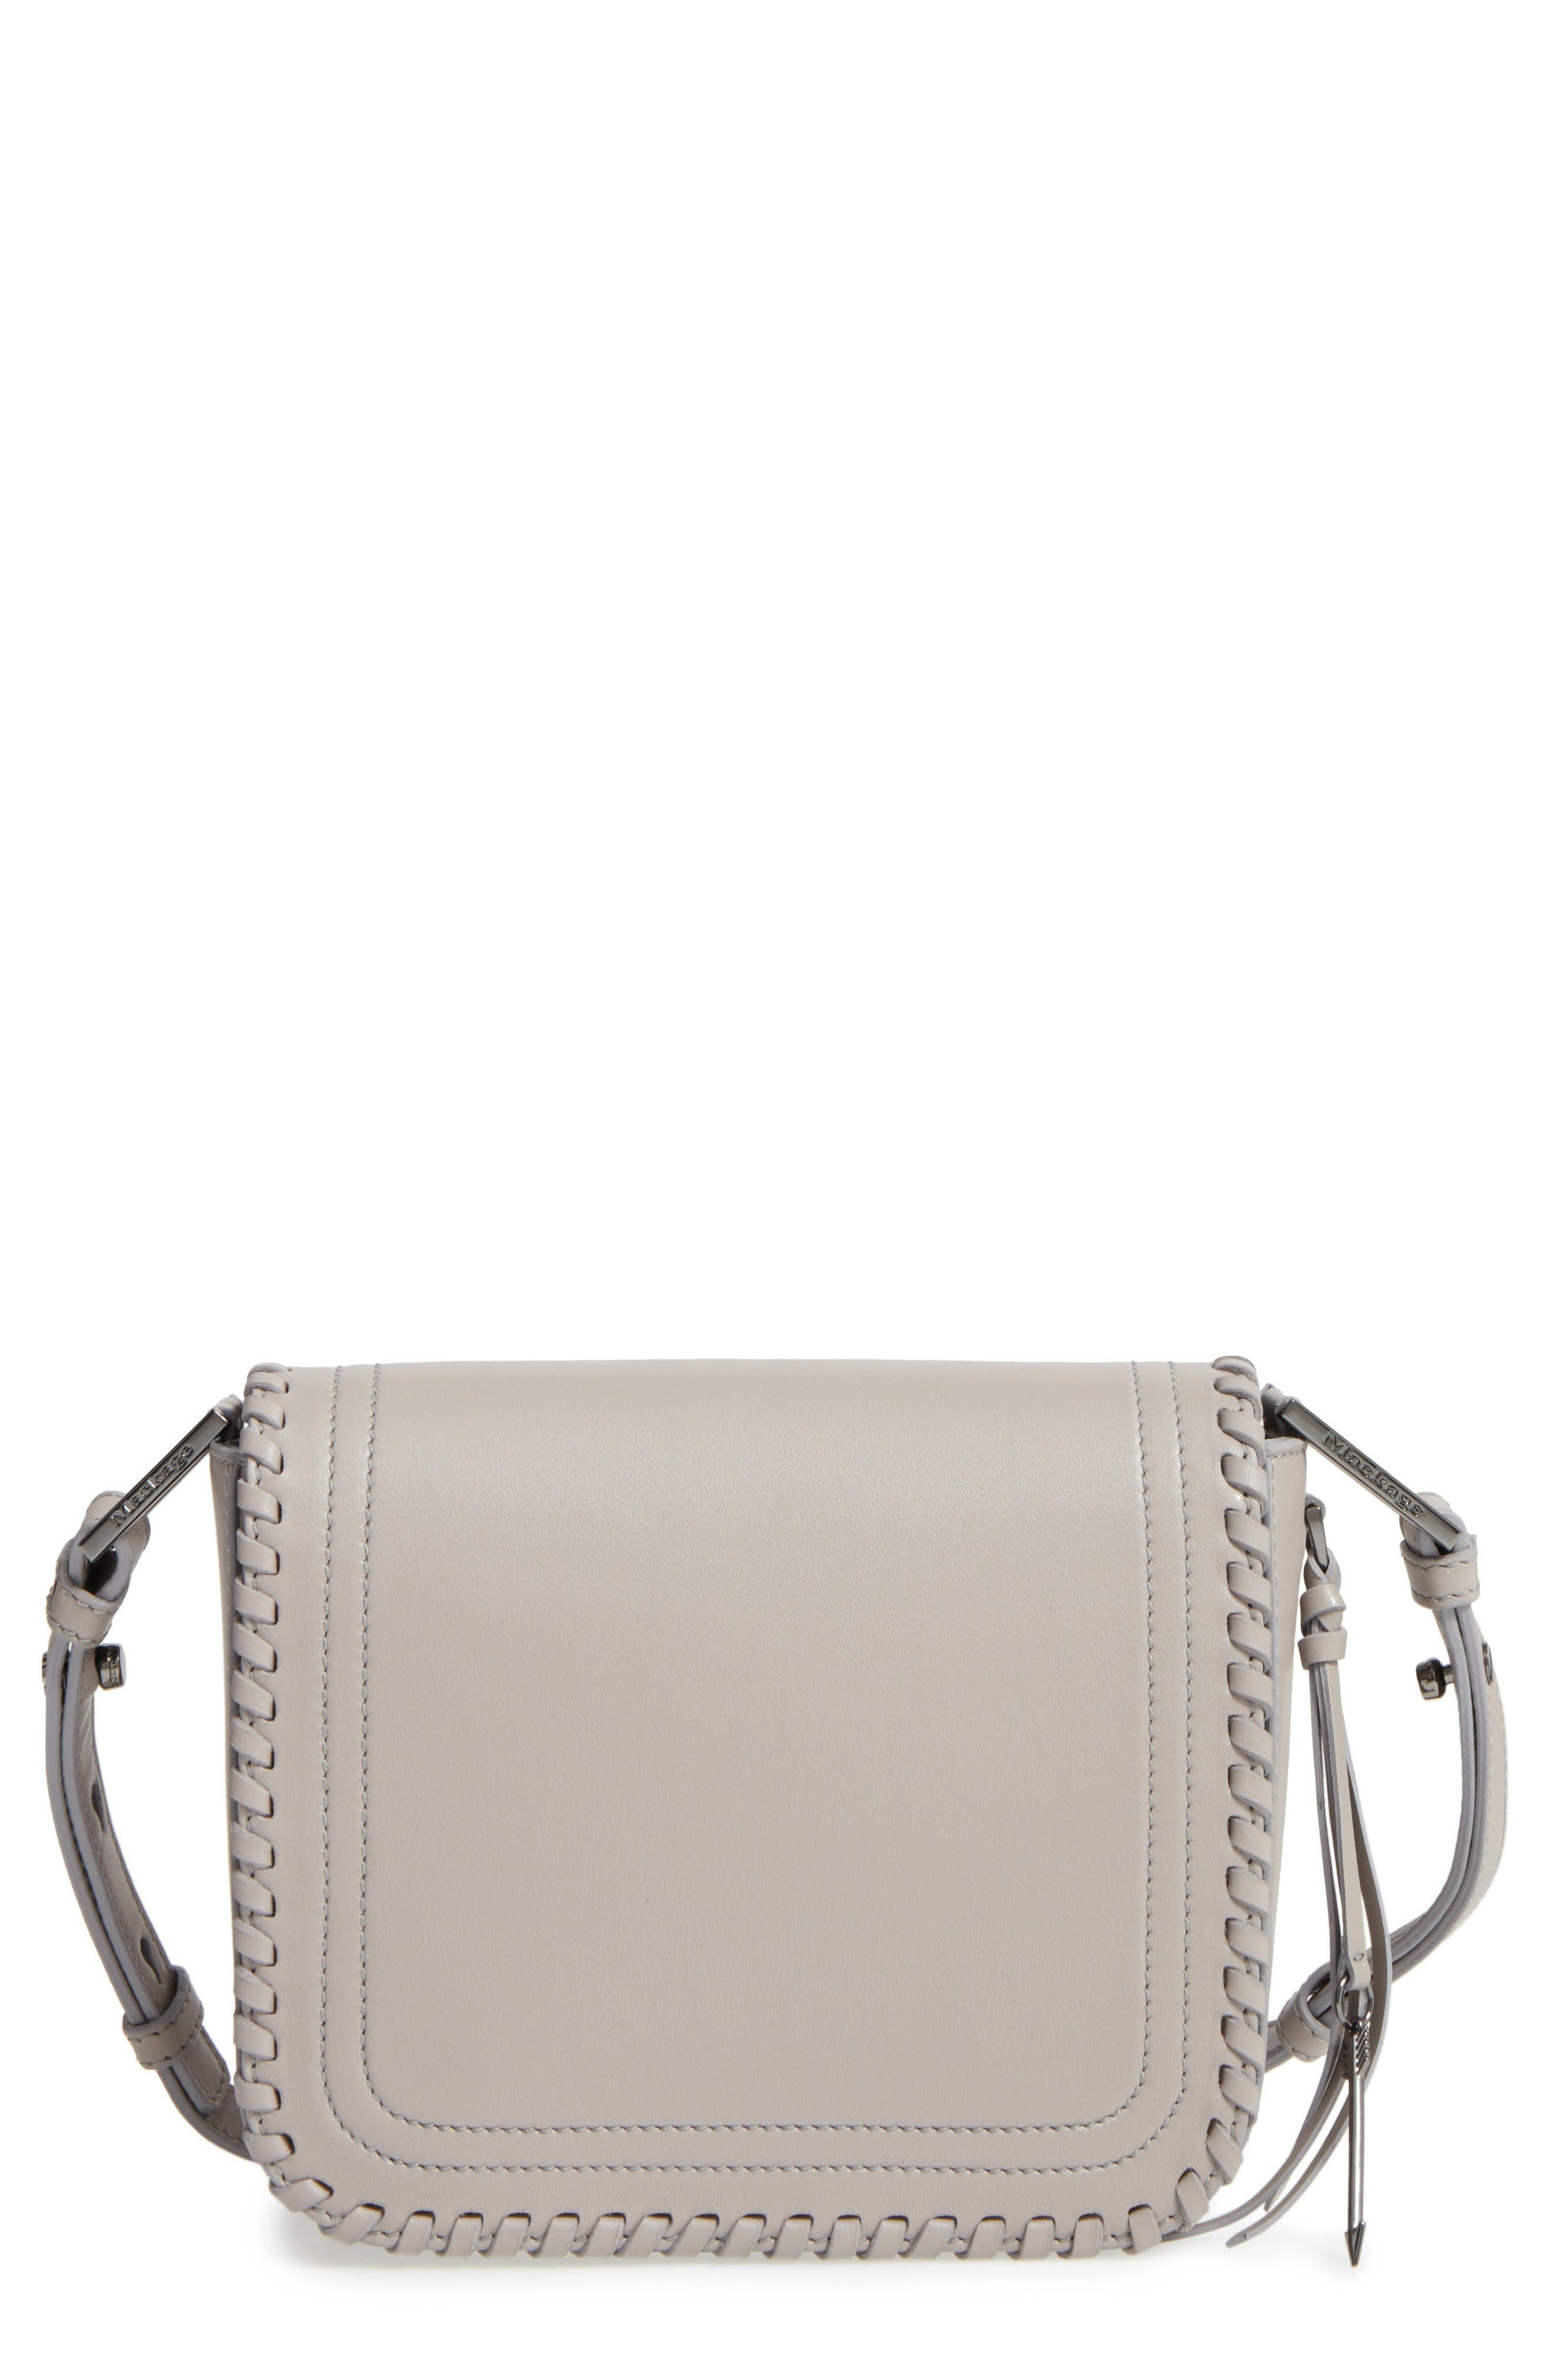 Mackage Nova Leather Crossbody Bag